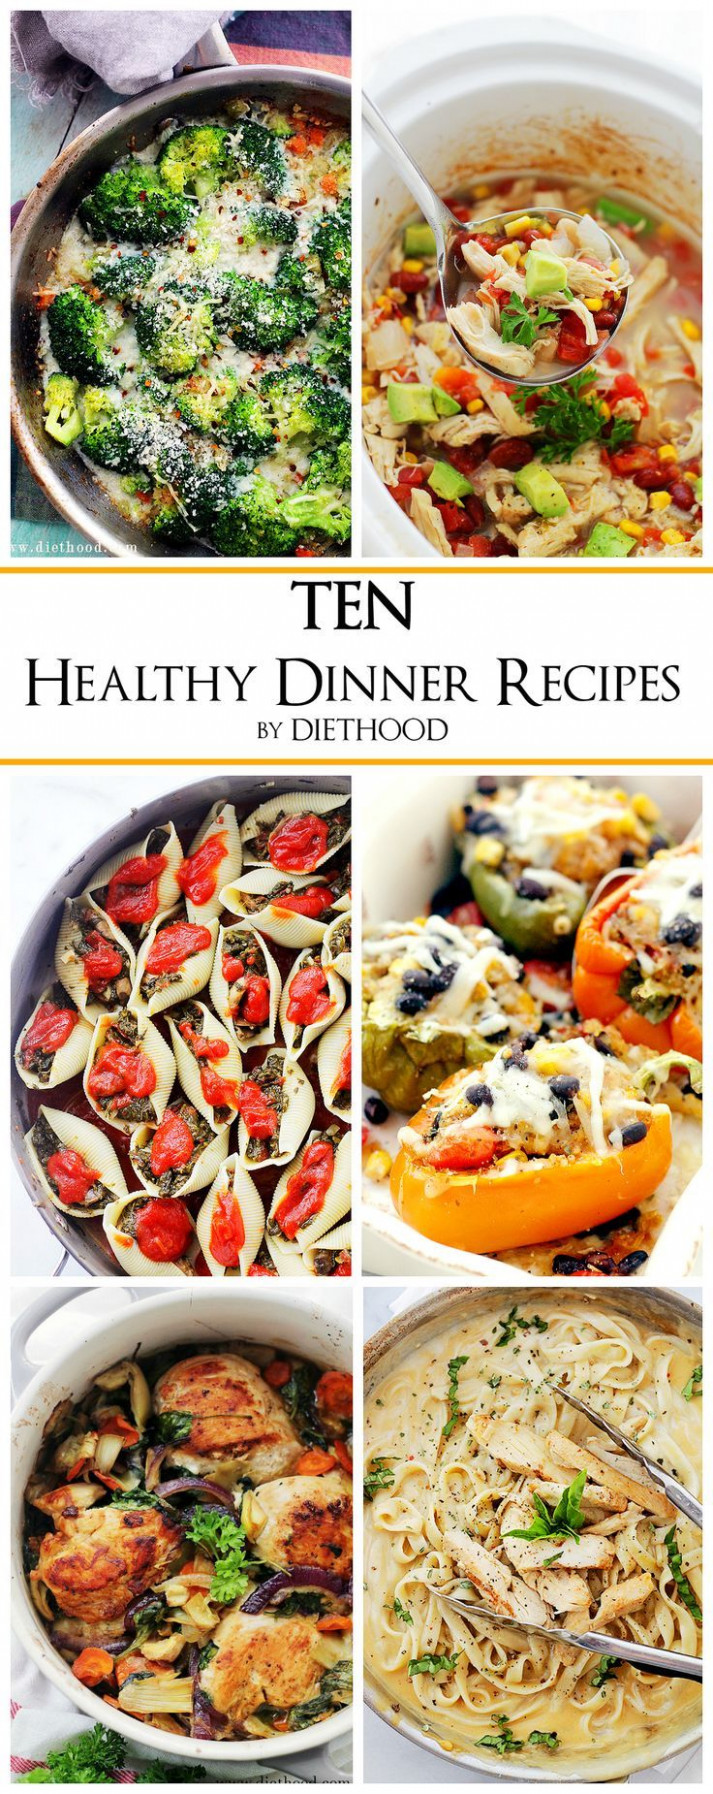 TEN Healthy Easy Dinner Recipes + Kale & Feta One-Pot ..